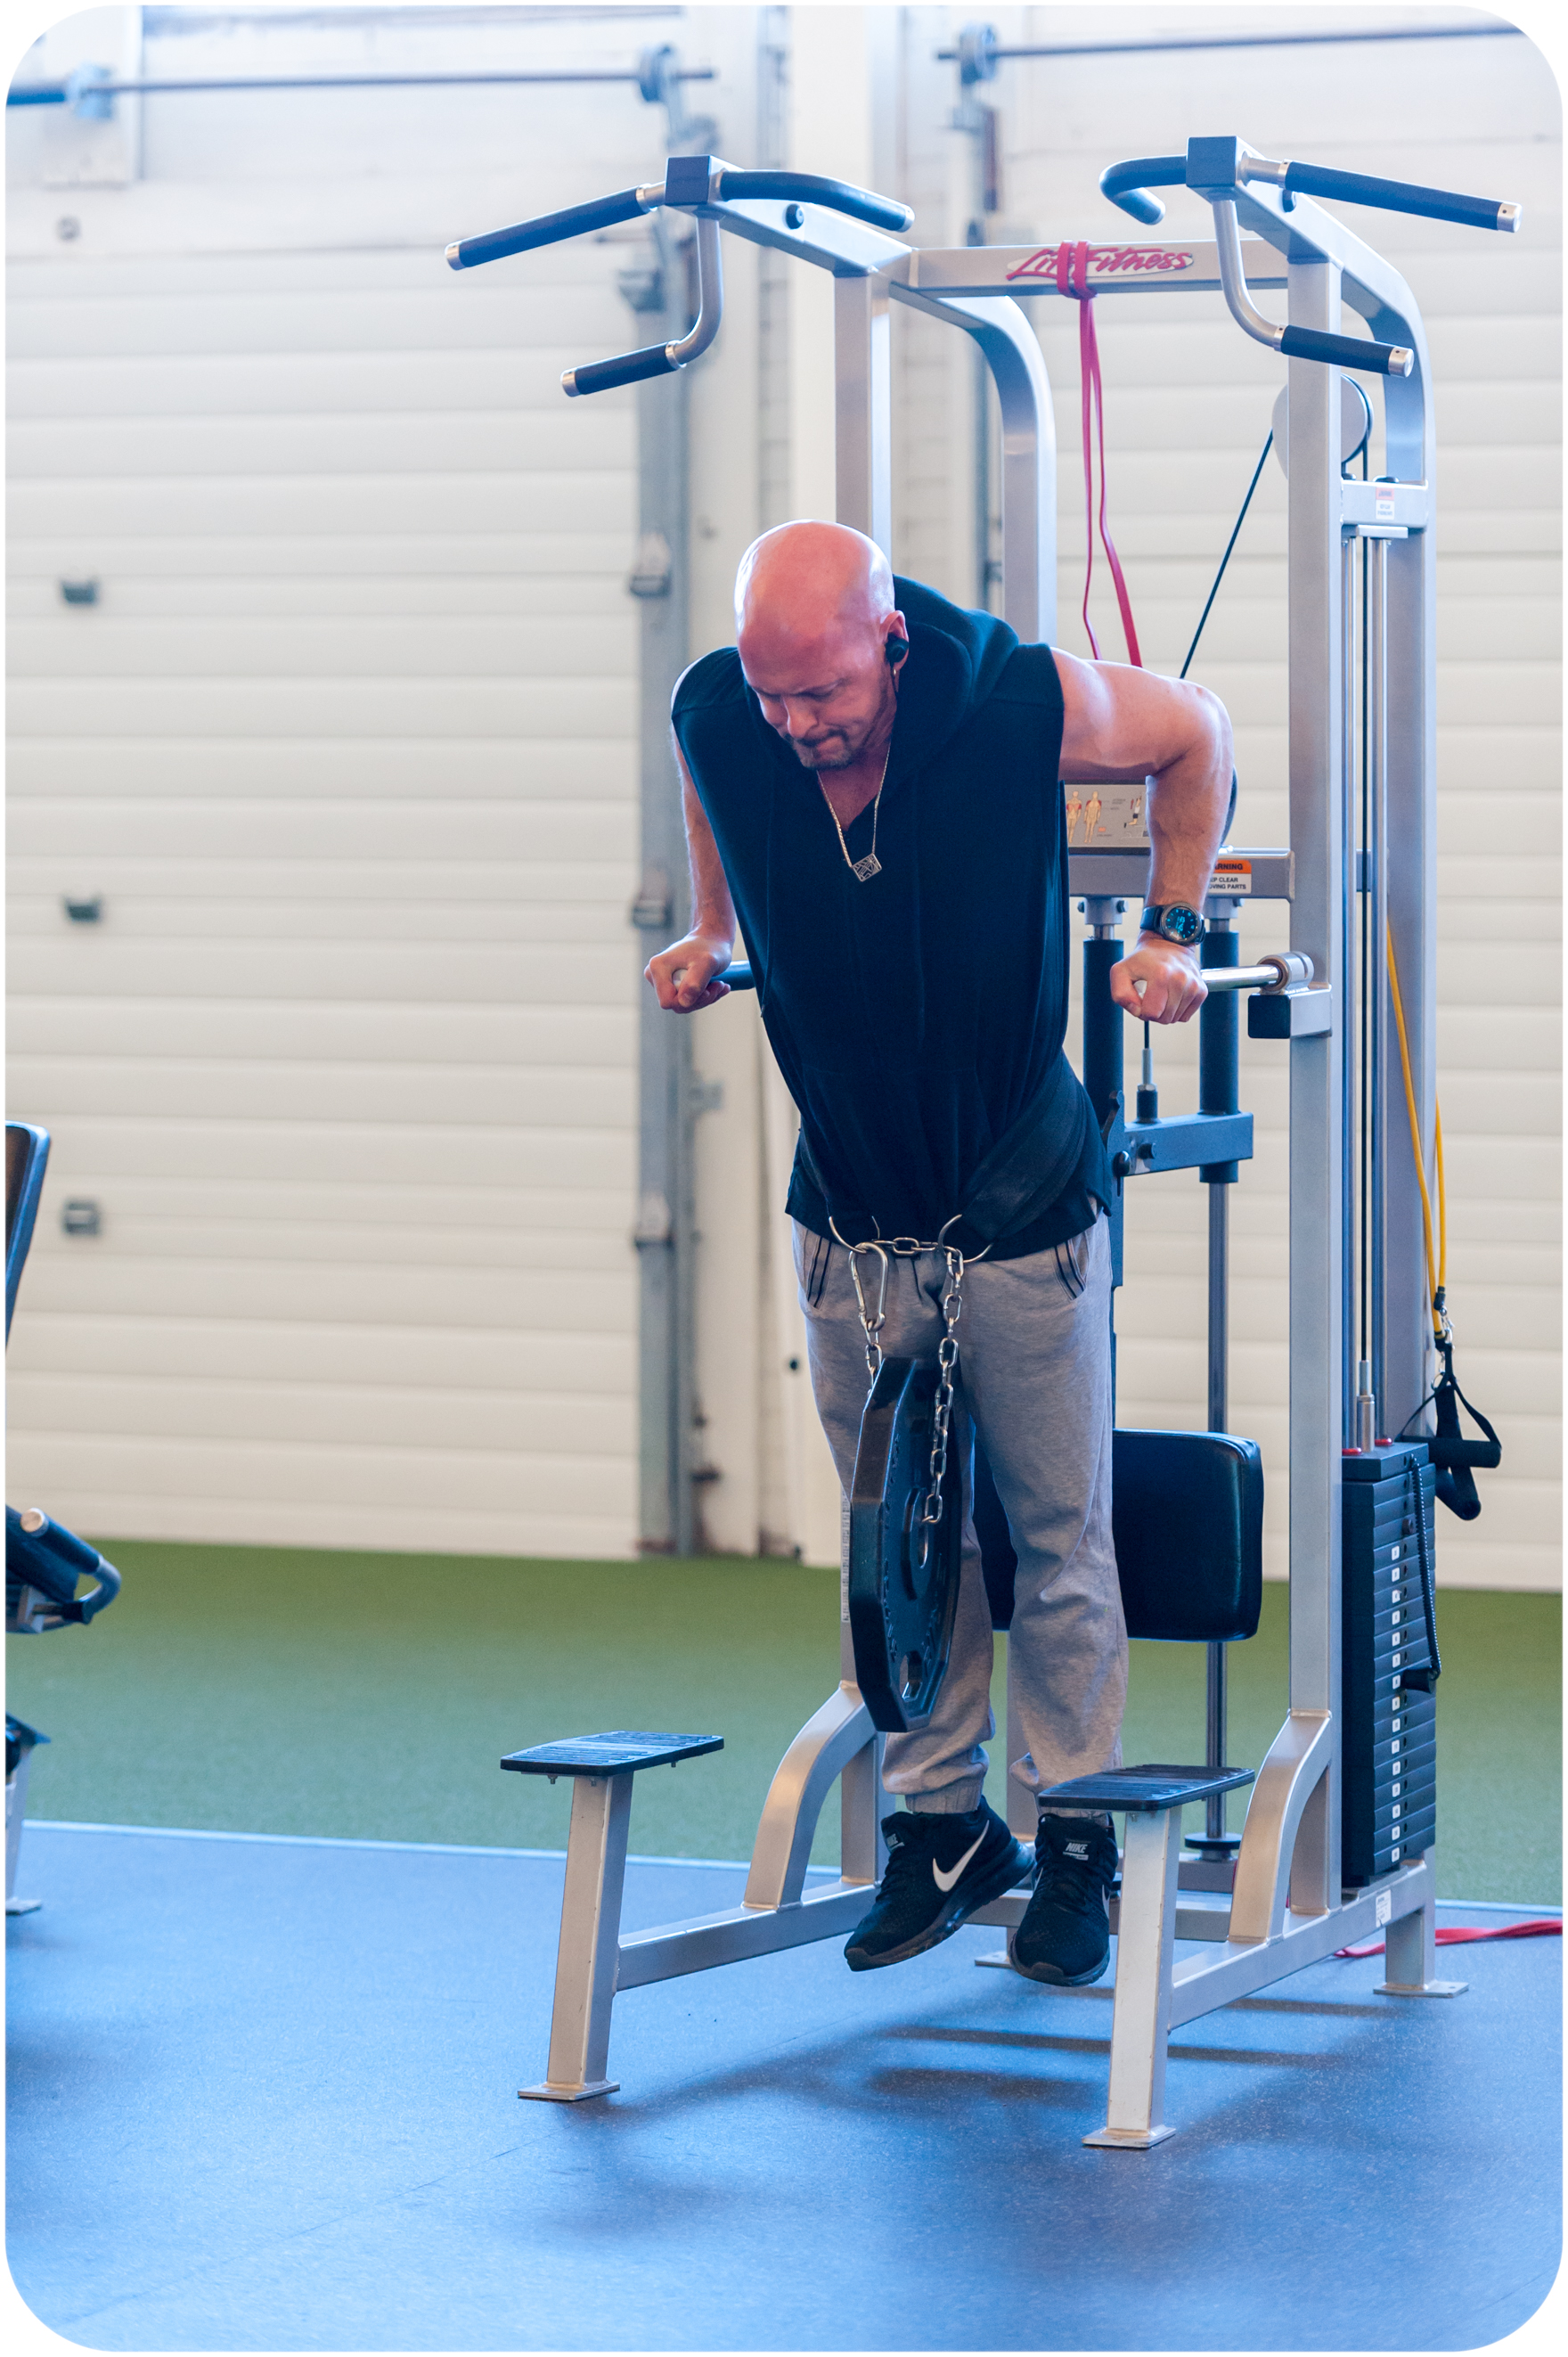 027_BodySoul_Trainer_Norm_March 19, 2018-Rounded.jpg